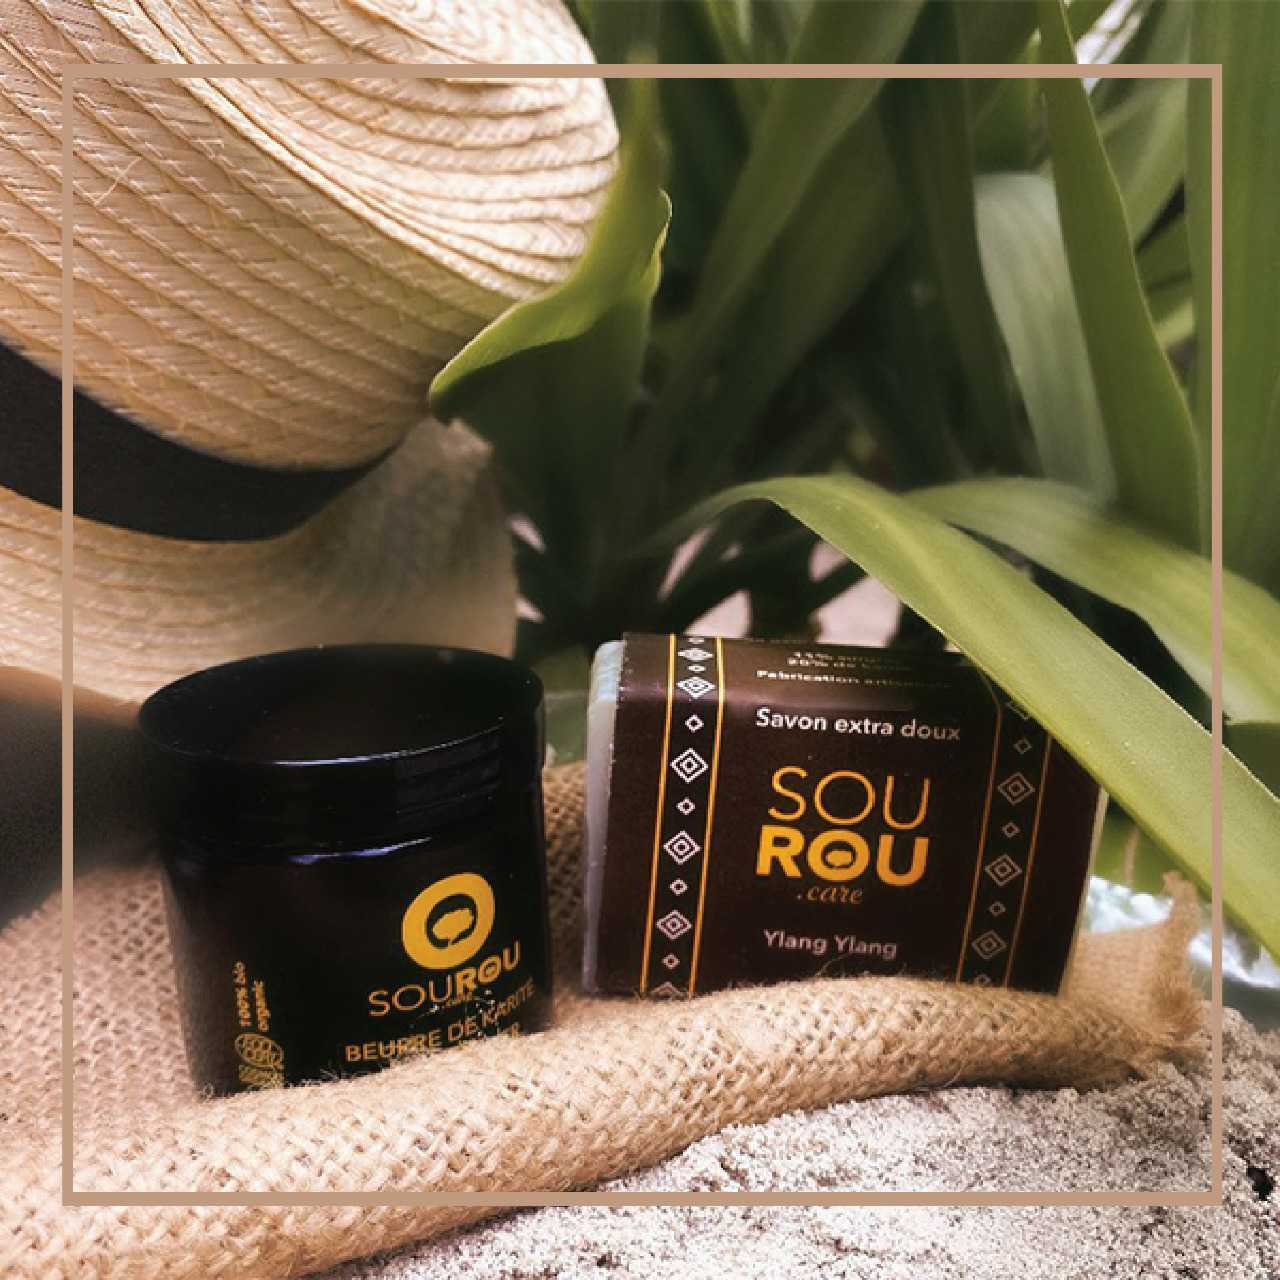 Skin care Marque Sourou.care Luxamour Homepage image marque